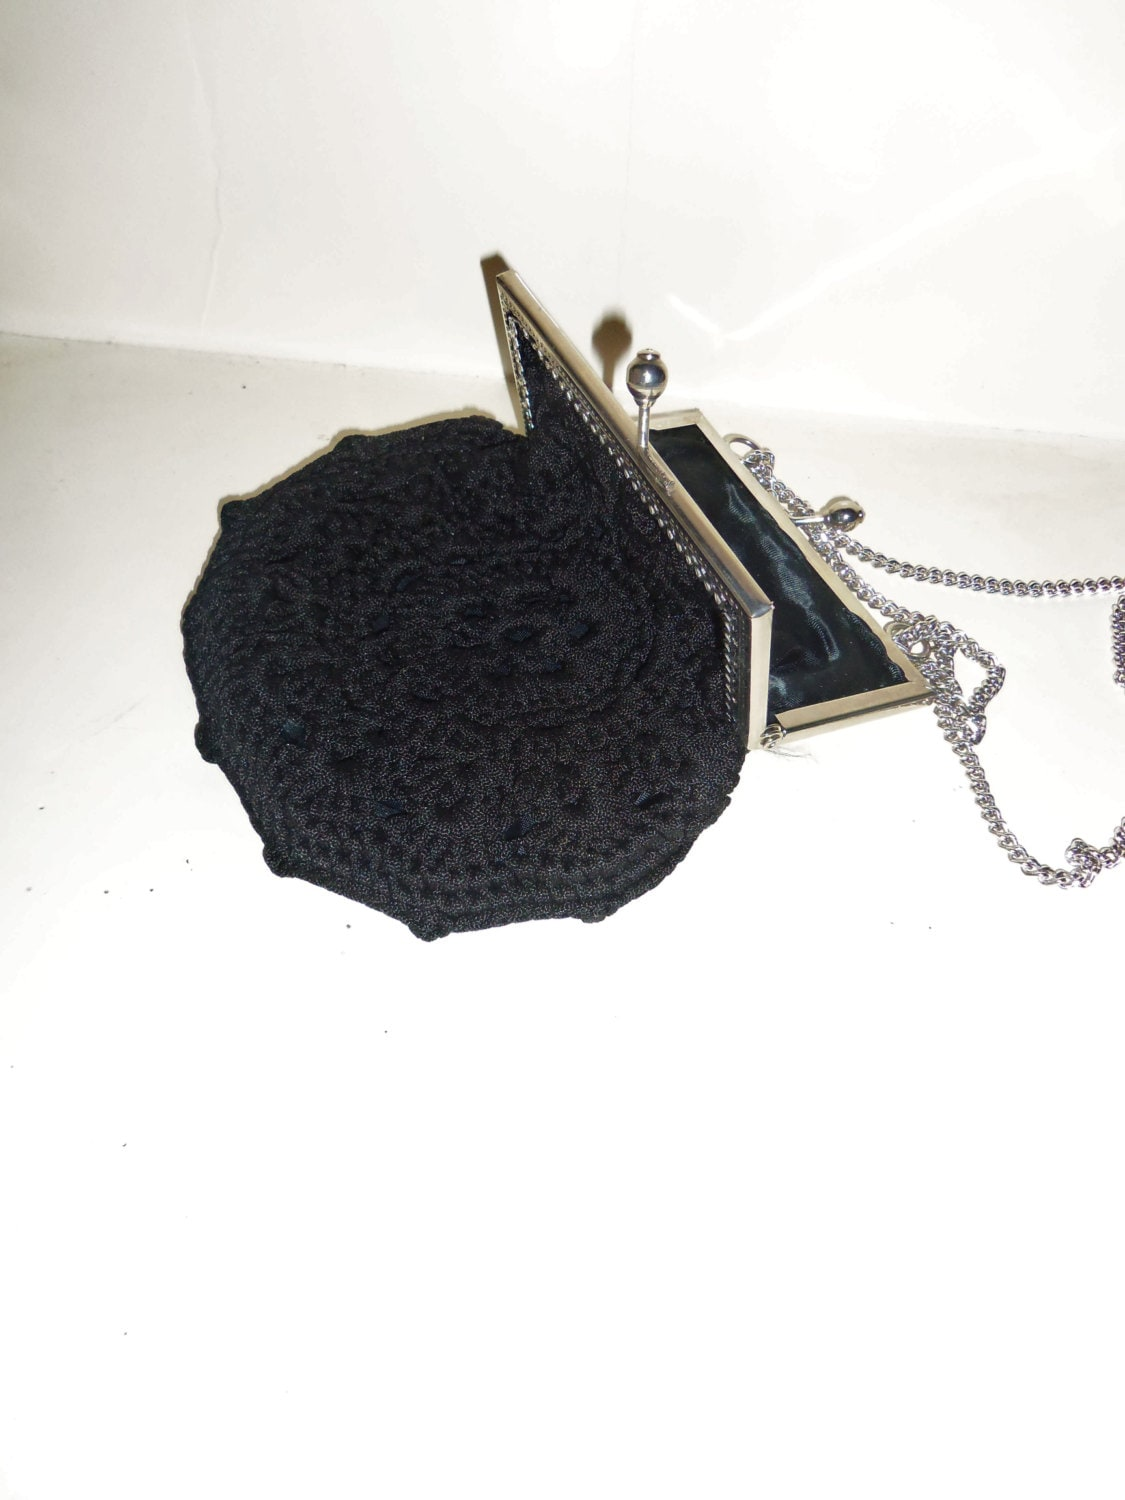 Crochet Wire Bags : Black Crochet Corde Purse Evening Bag Silver Metal by Avaricia